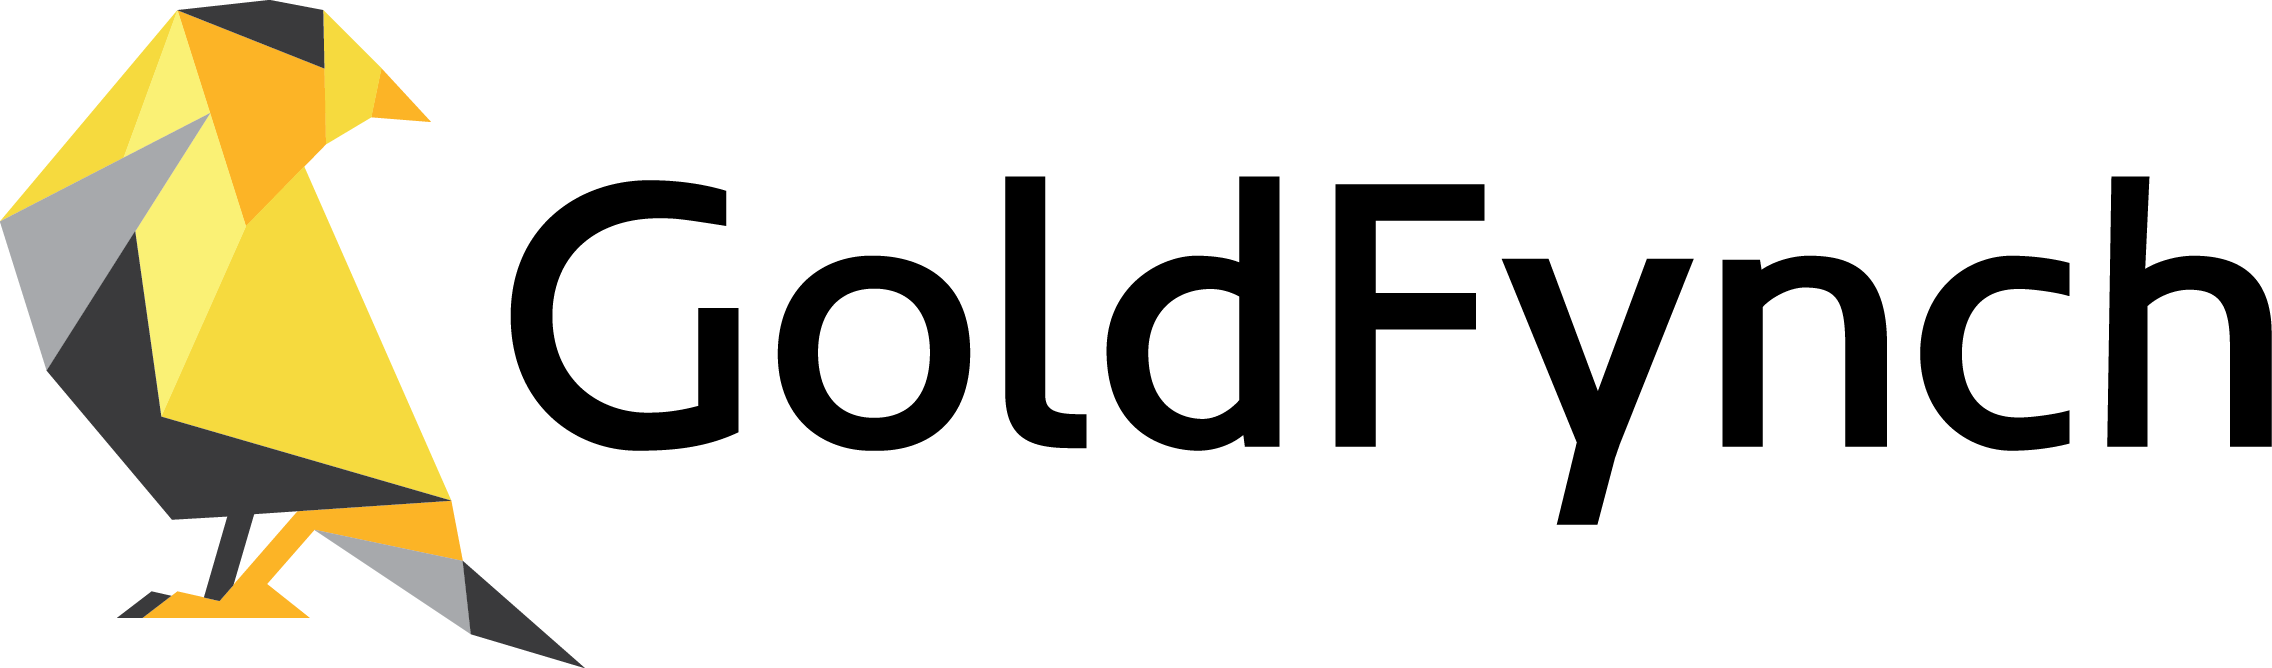 Logo for GoldFynch eDiscovery software